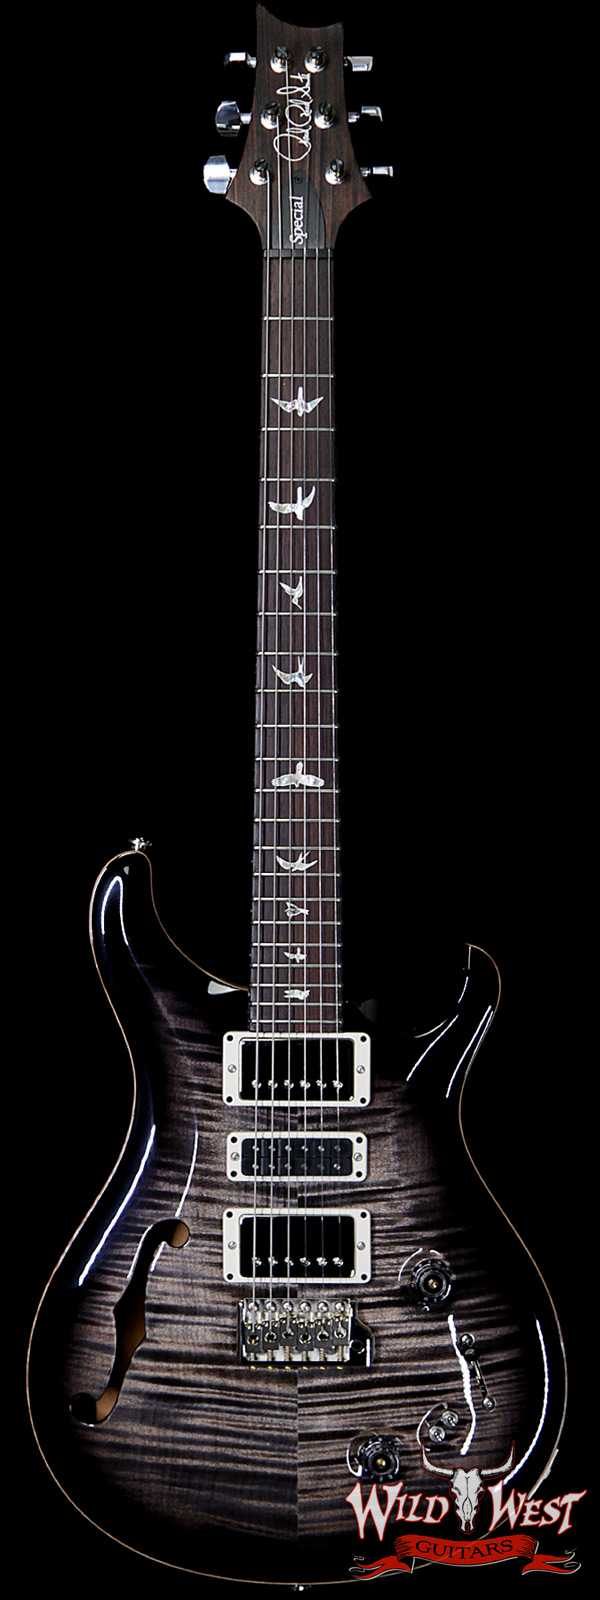 Paul Reed Smith PRS Semi-Hollow Limited Edition Special 22 Rosewood Fingerboard Charcoal Burst